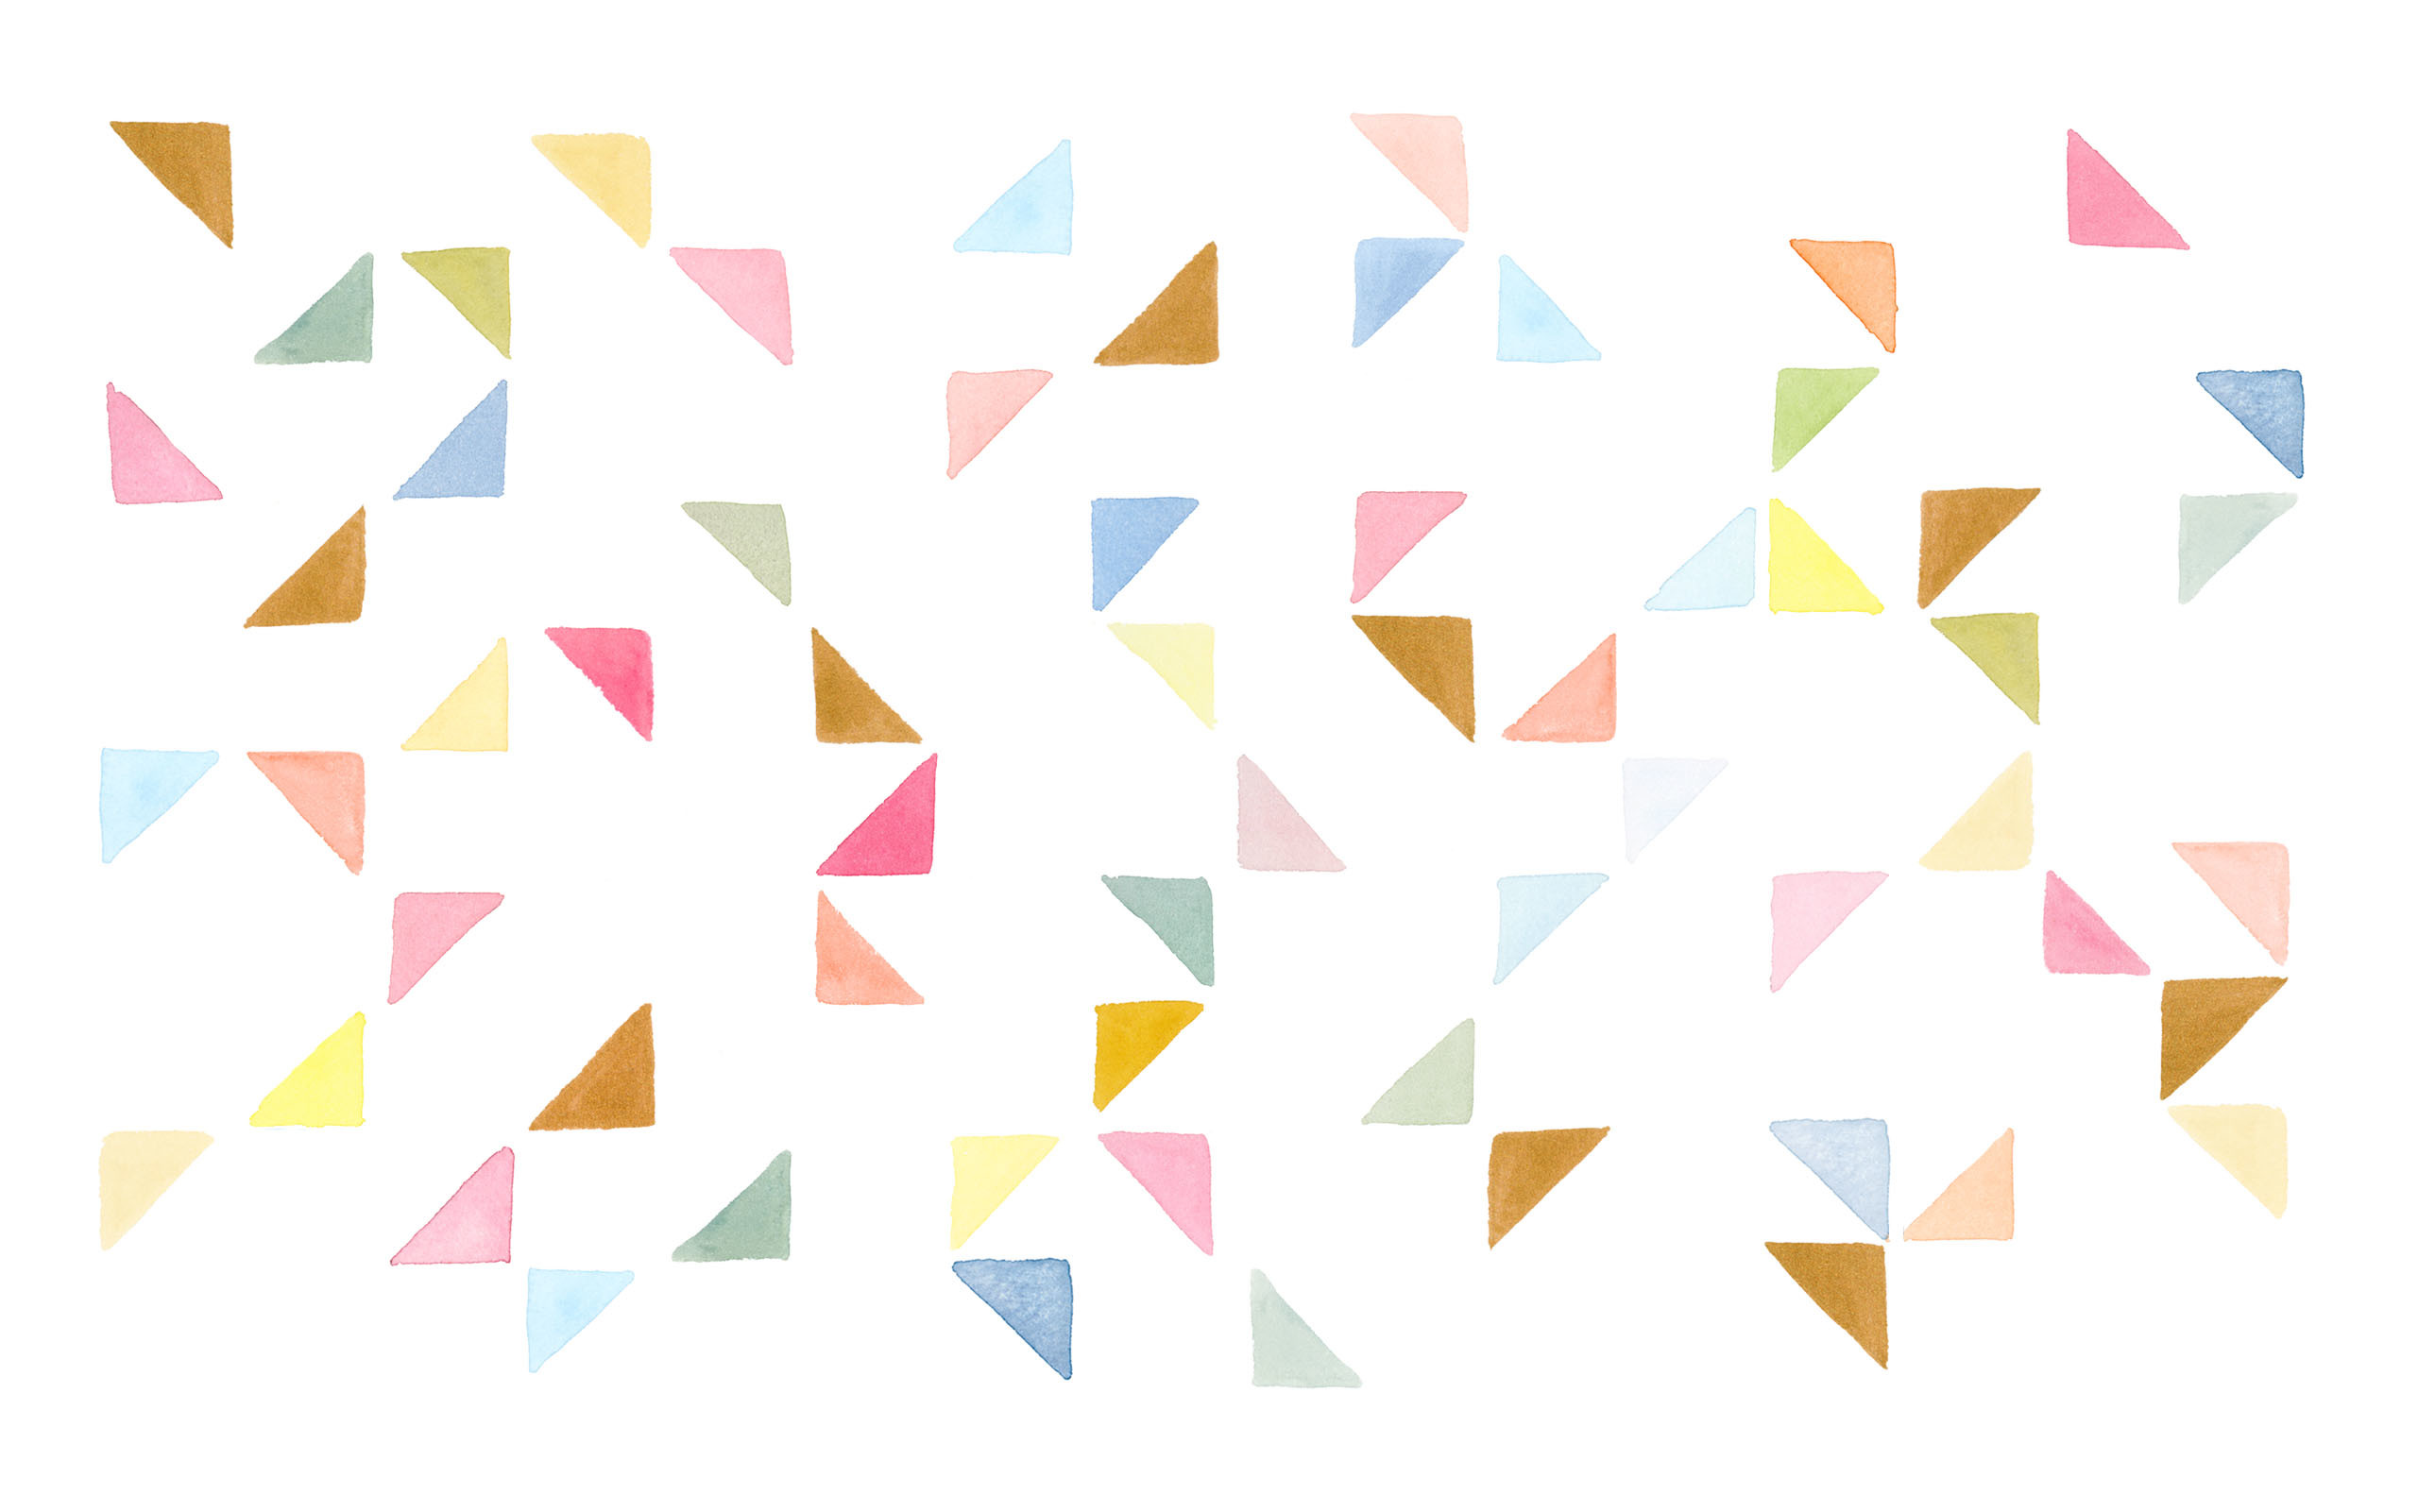 2560x1601 click to download the WATERCOLOR TRIANGLES (34295) DESKTOP WALLPAPER ...